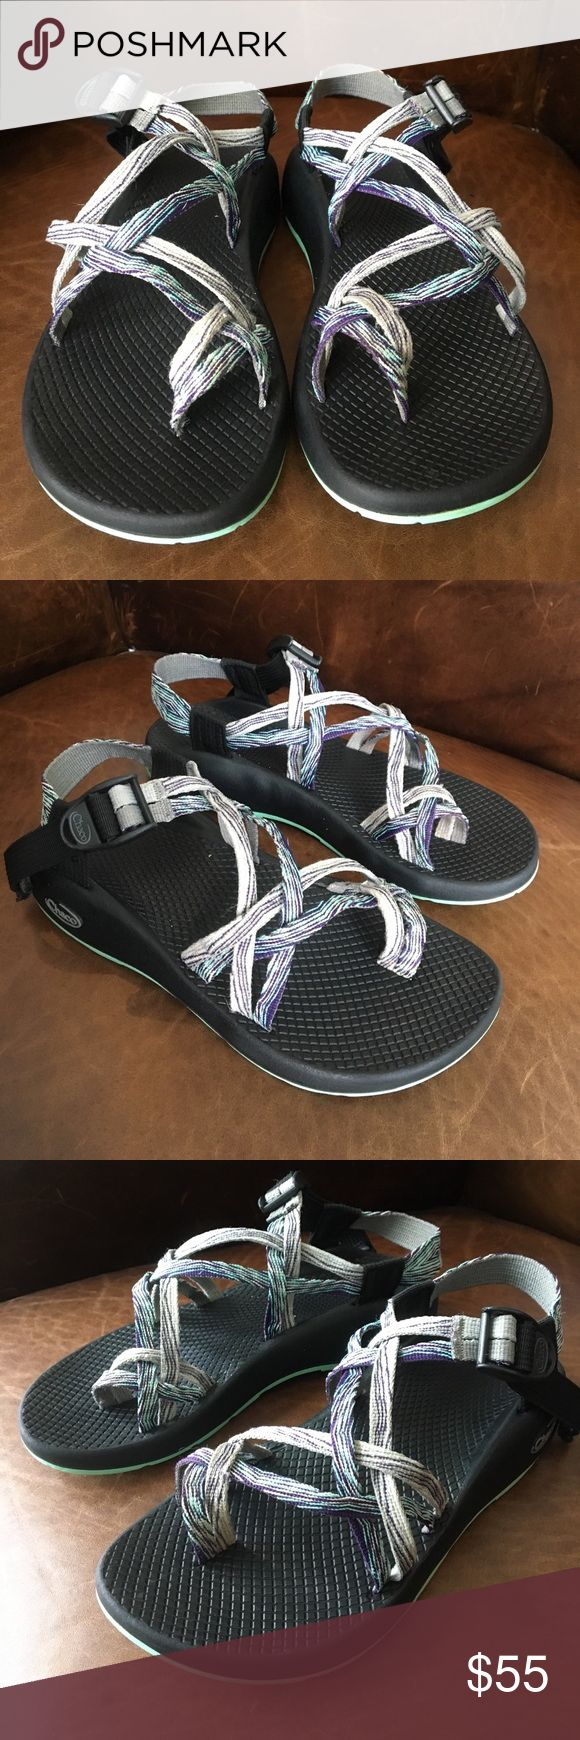 Chacos size 7. Purple aqua grey stripes. XS2 Yampa Women's Chacos size 7. XS2 Yampa. Vibram sole. Preowned. Excellent tread. Purple aqua and grey stripes. Freshly washed, scrubbed and detailed uppers. Supper clean toe area and foot bed which is rare for used Chacos. Chaco Shoes Sandals